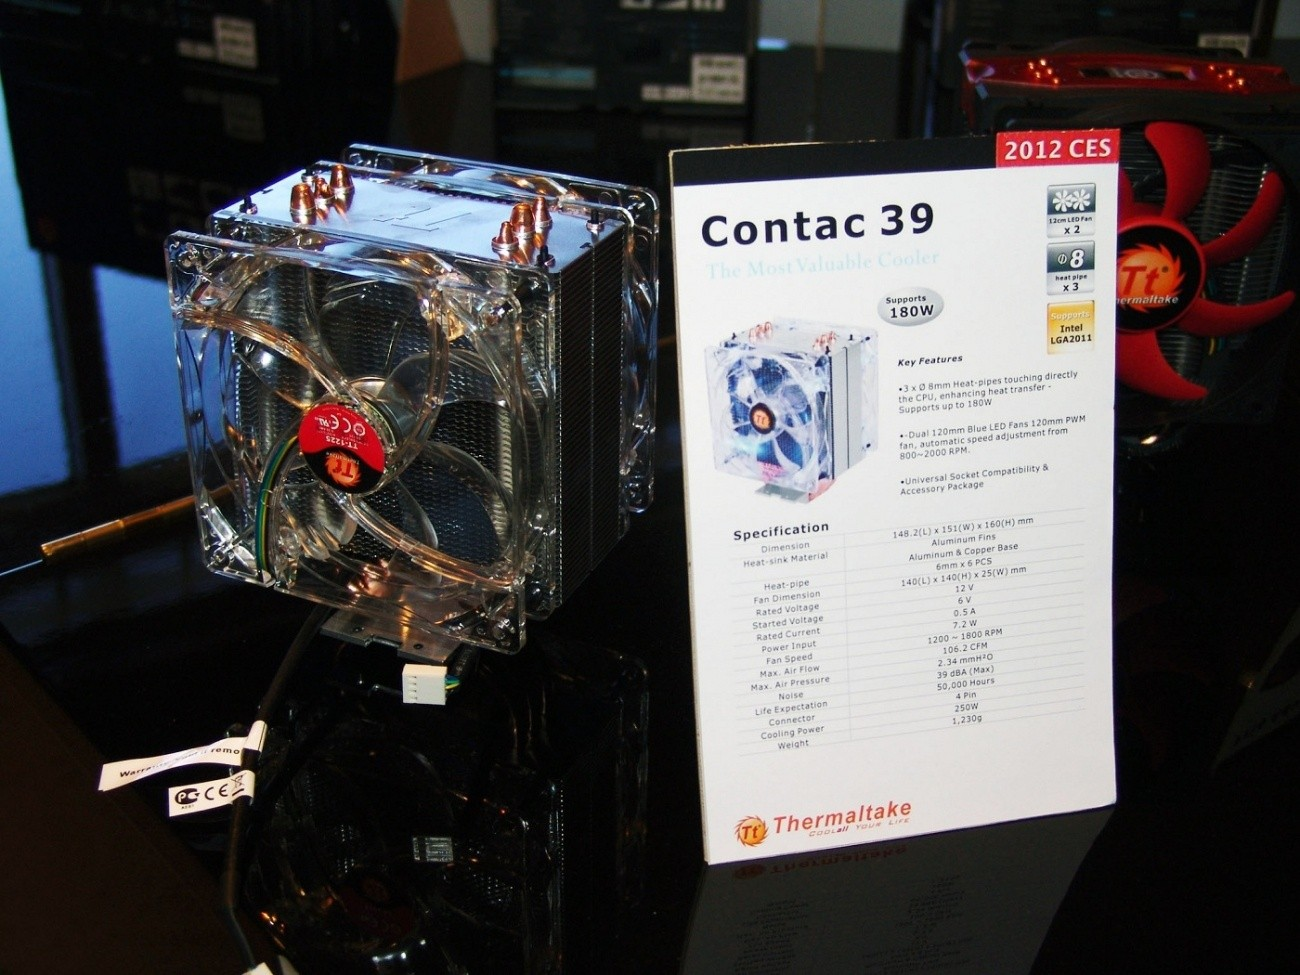 thermaltake_has_a_plethora_of_coolers_about_to_hit_the_market_after_ces_2012